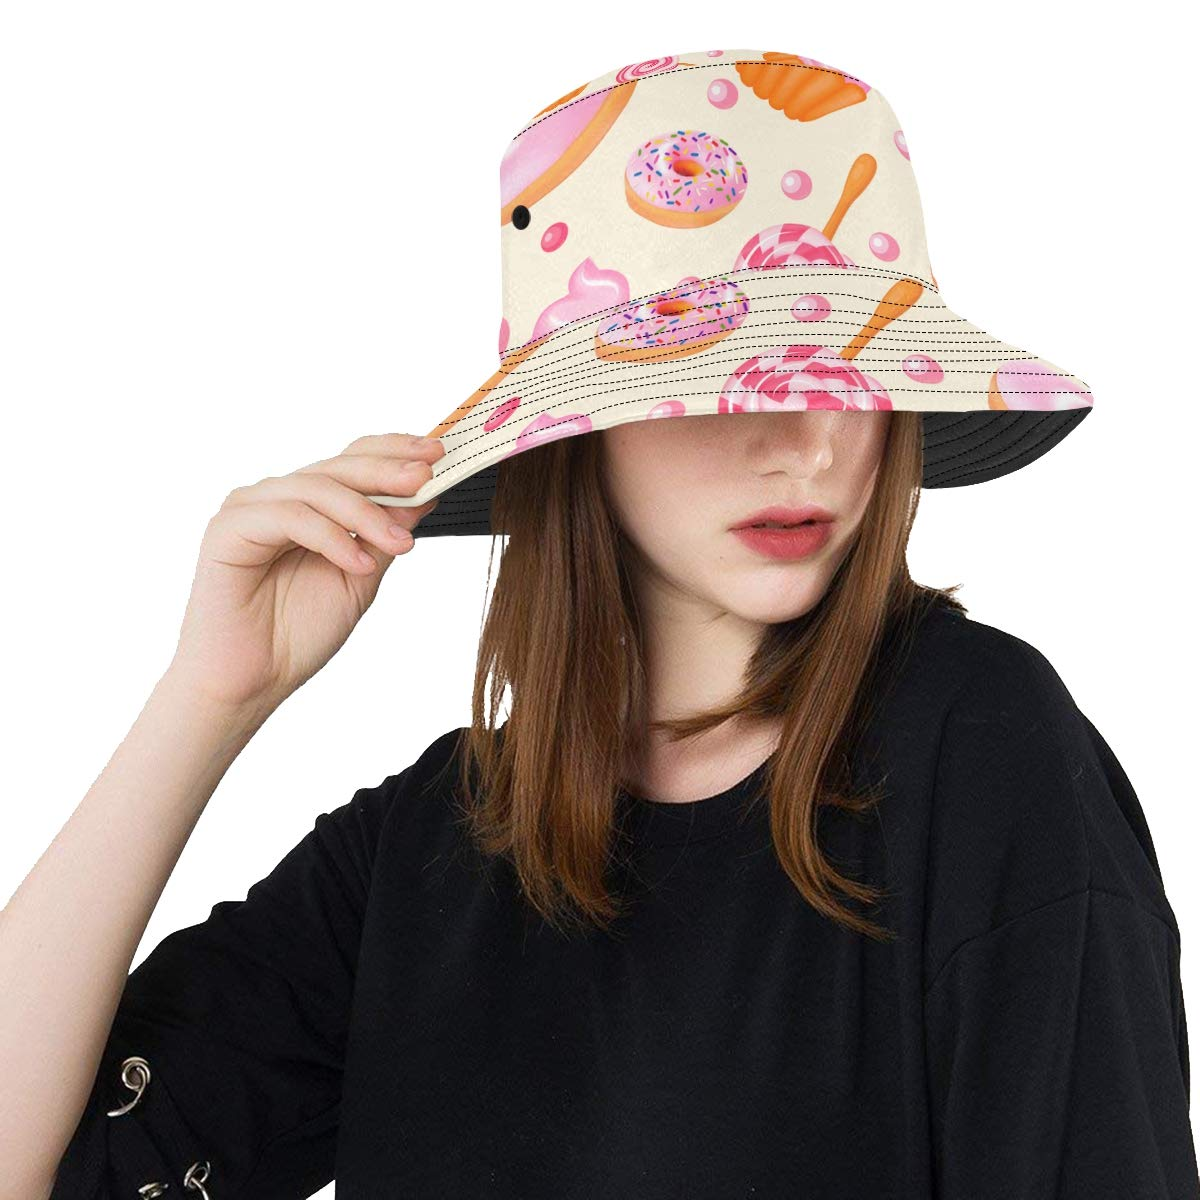 Yummy Sweet Candy Dessert New Summer Unisex Cotton Fashion Fishing Sun Bucket Hats for Kid Women and Men with Customize Top Packable Fisherman Cap for Outdoor Travel Teens